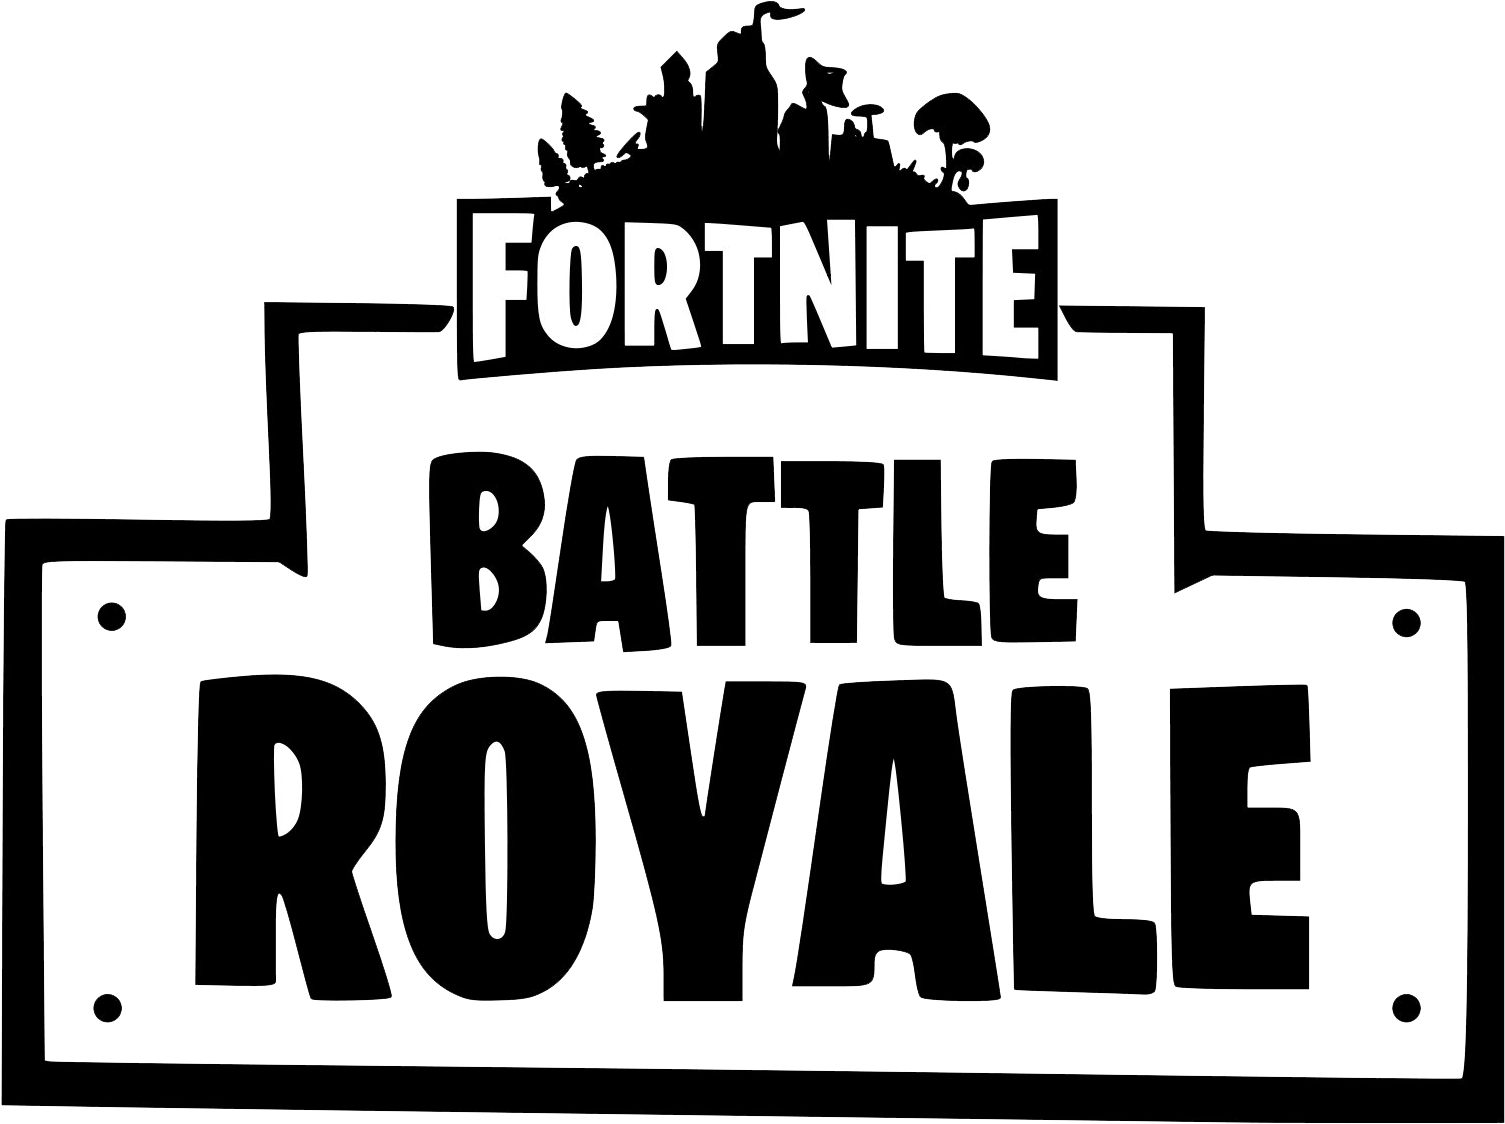 fortnite clipart logo 10 free Cliparts | Download images ...